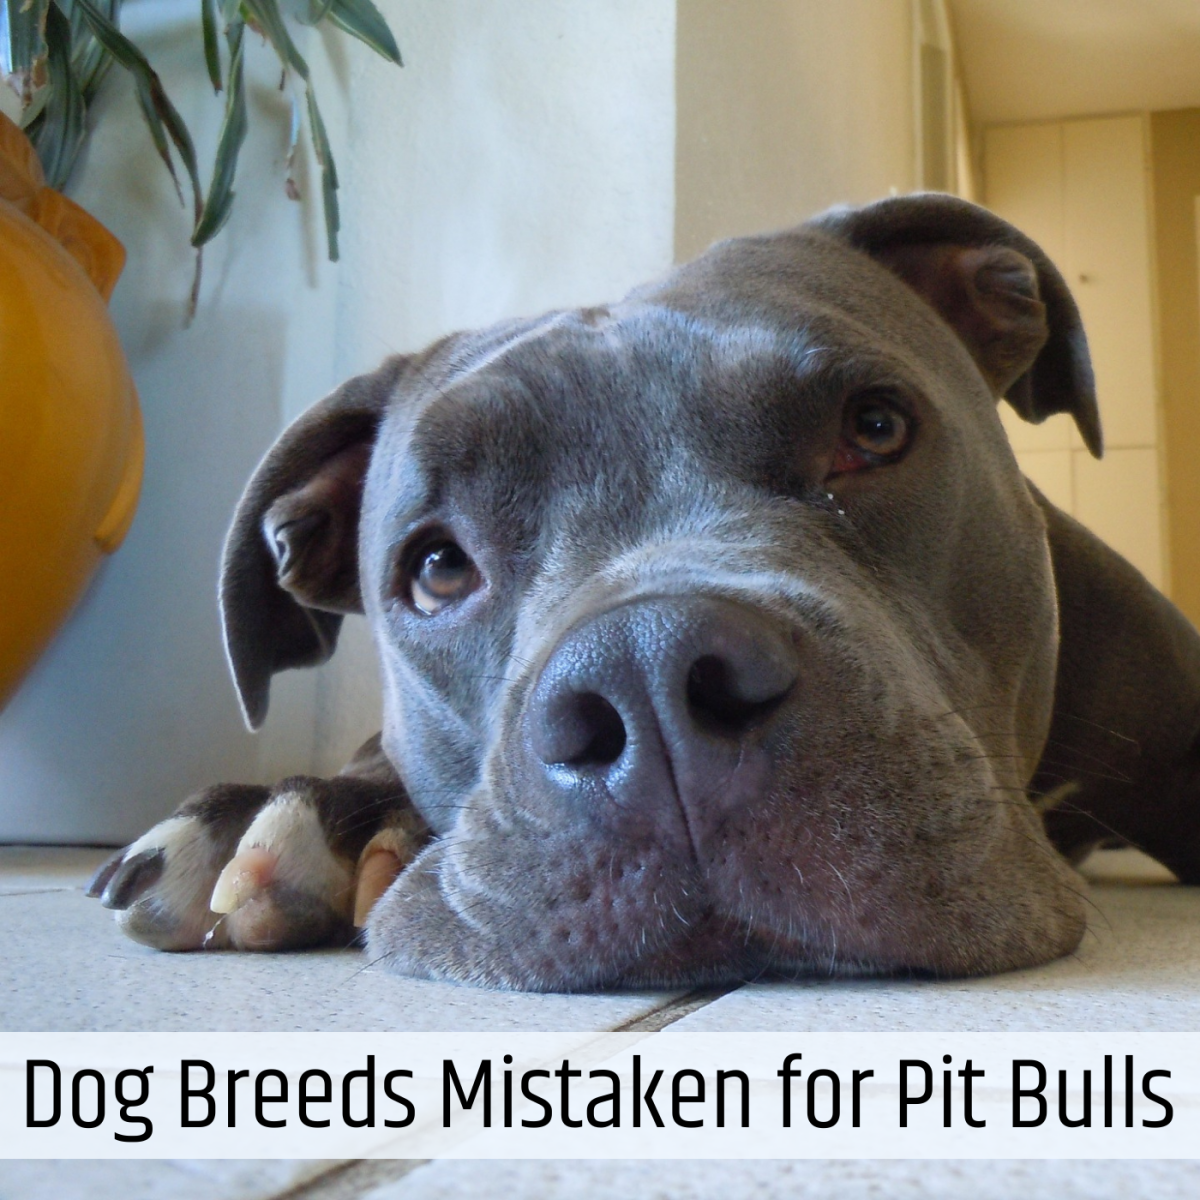 Many other breeds bear some resemblance to the American pit bull terrier. Learn about some of the breeds that are most commonly mistaken for pit bulls.